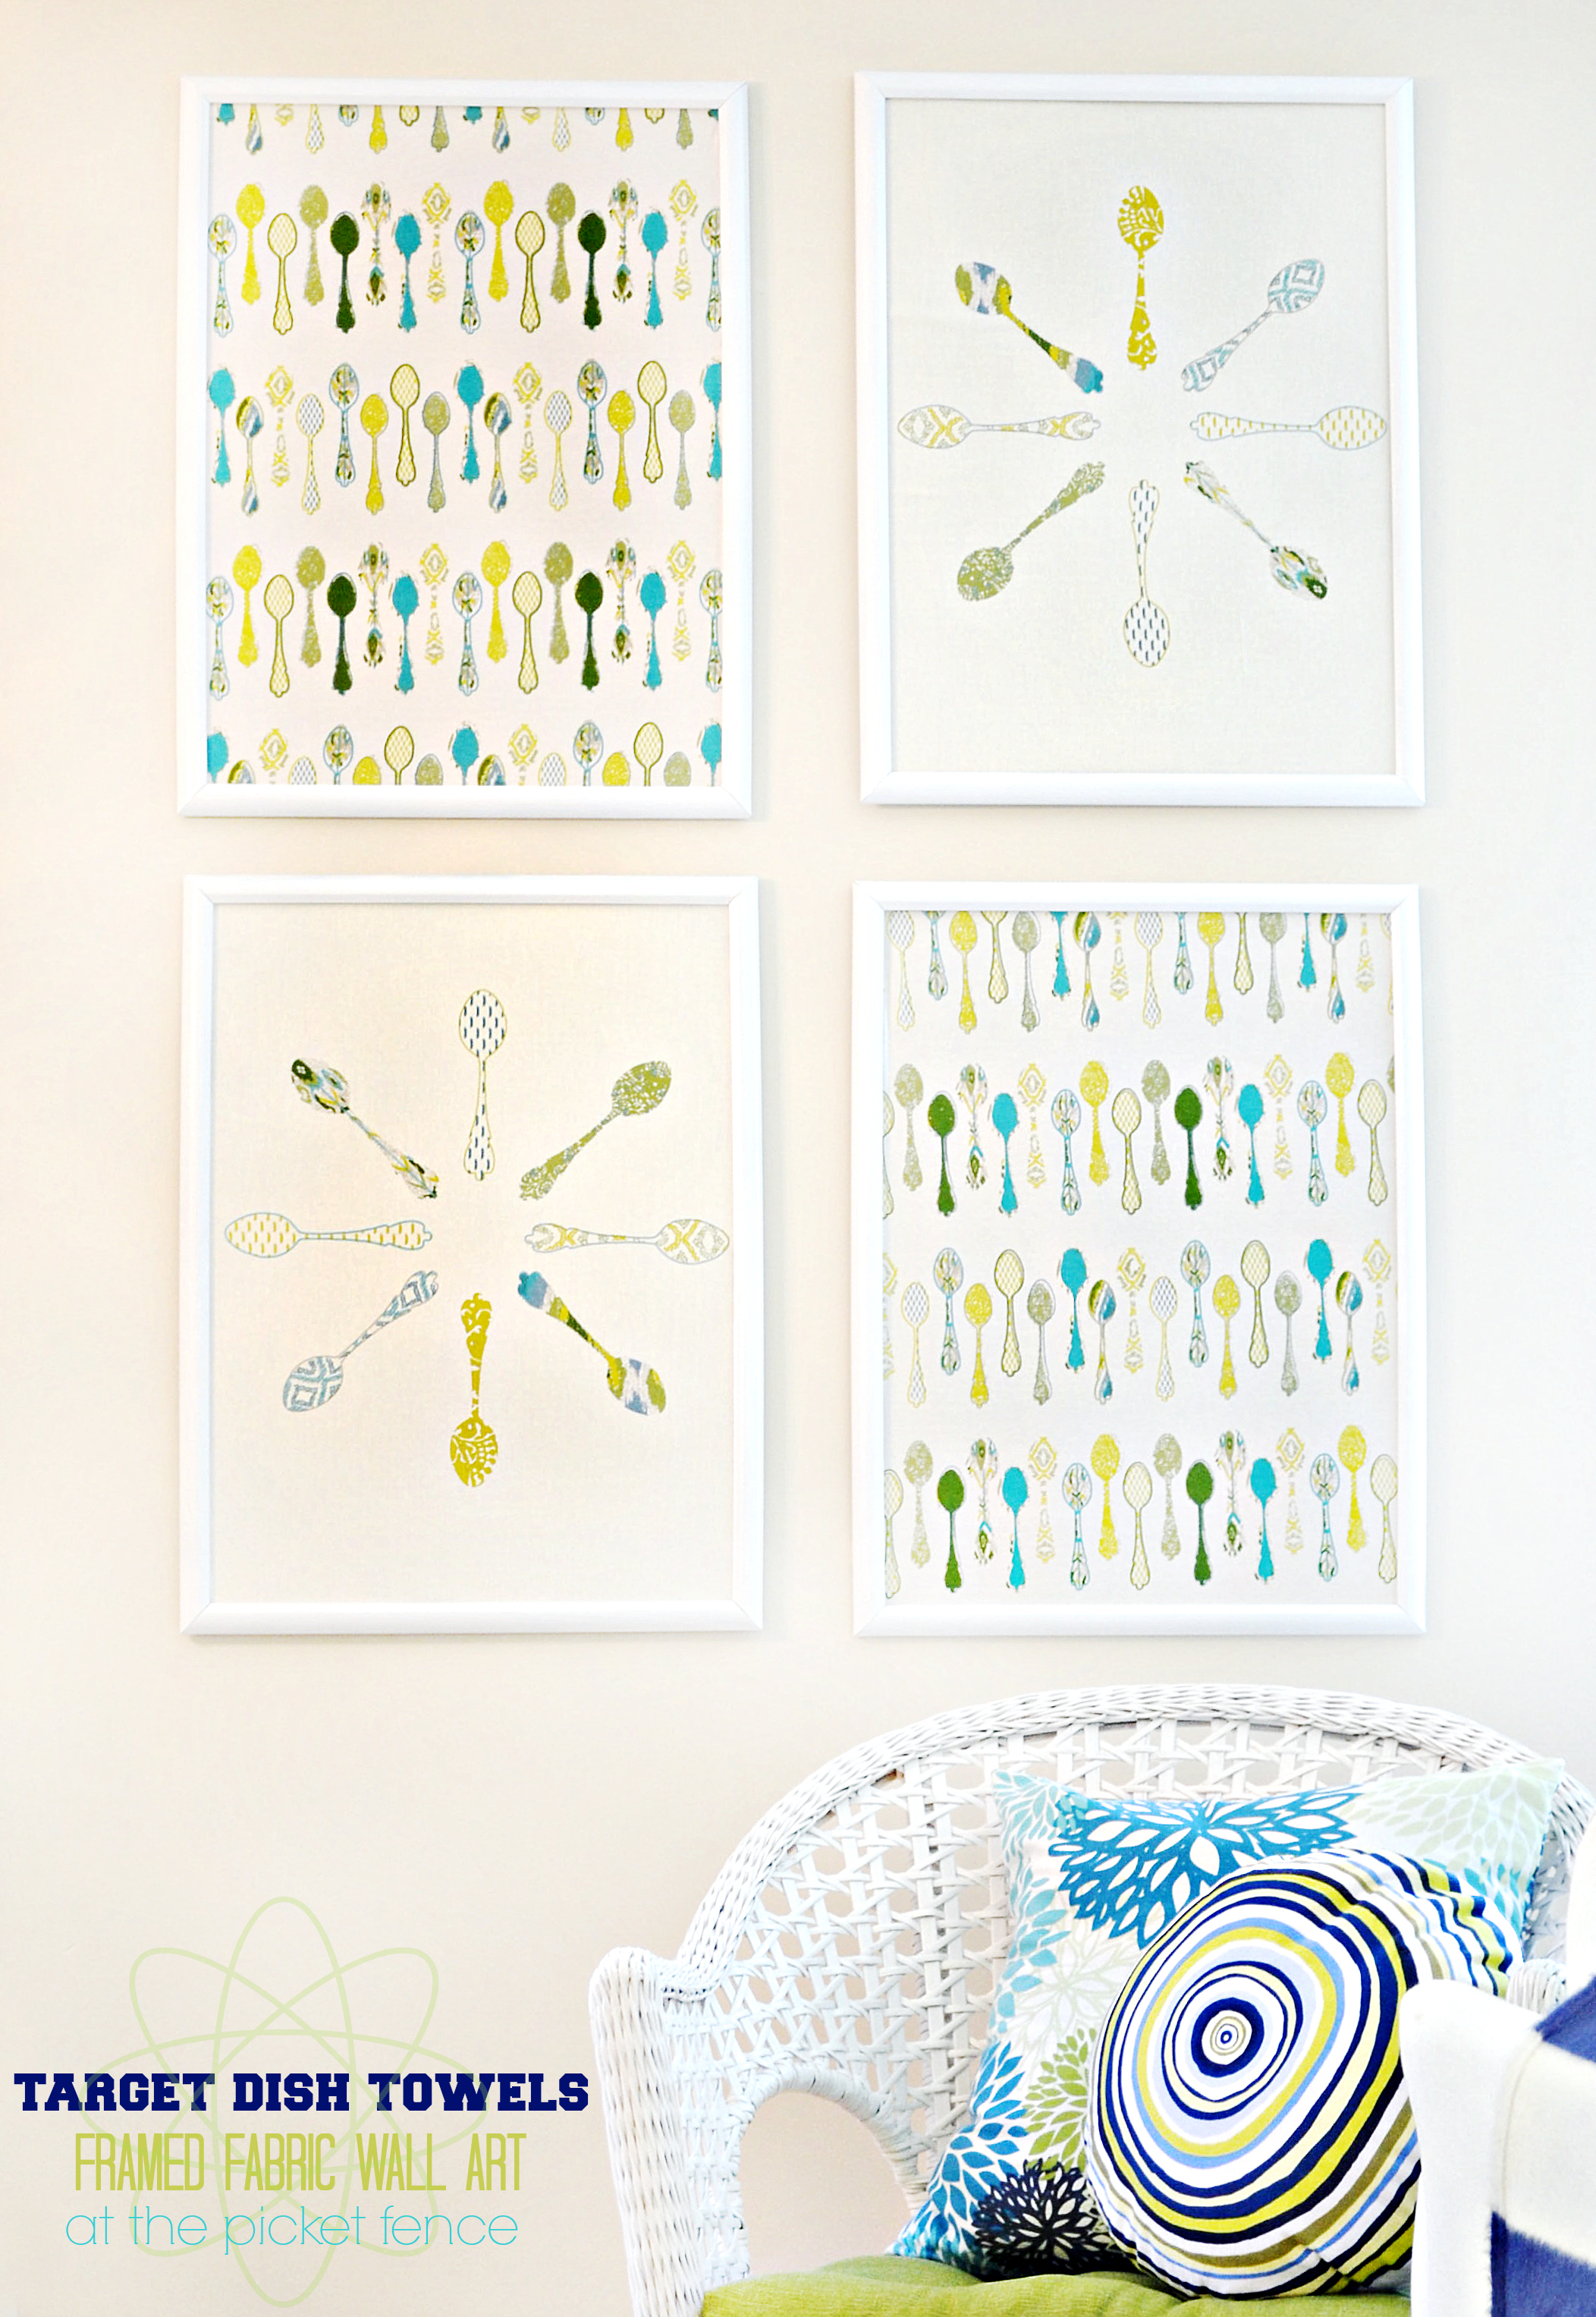 How to Make Framed Fabric Wall Art with Target Kitchen Towels!